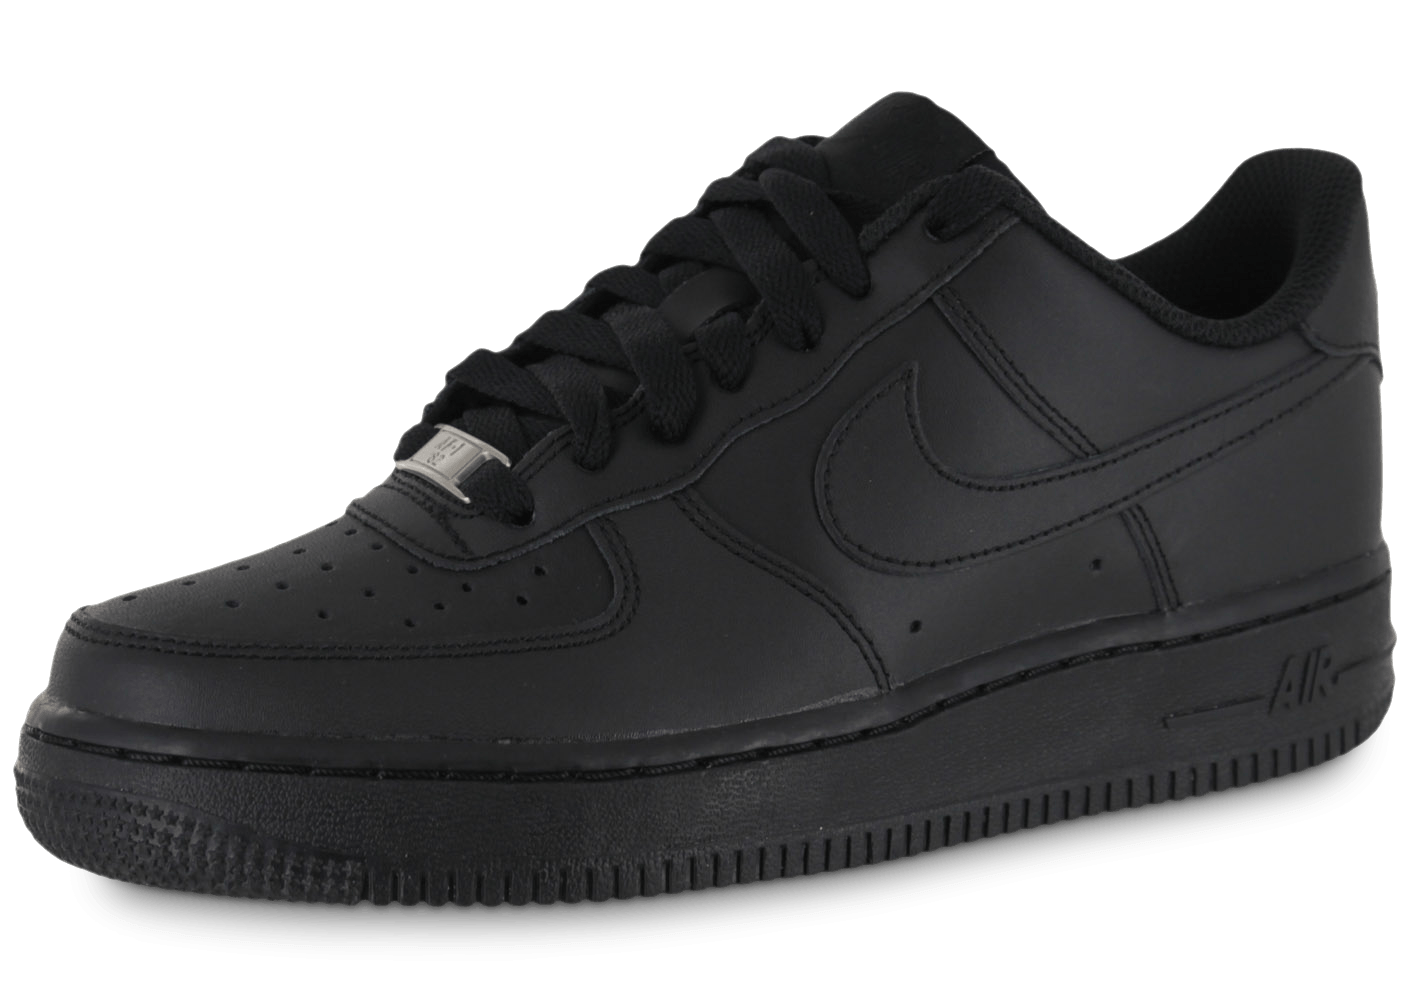 2ce444be21a 7254 chaussures nike air force 1 low junior noire vue exterieure. air force  one nike basse